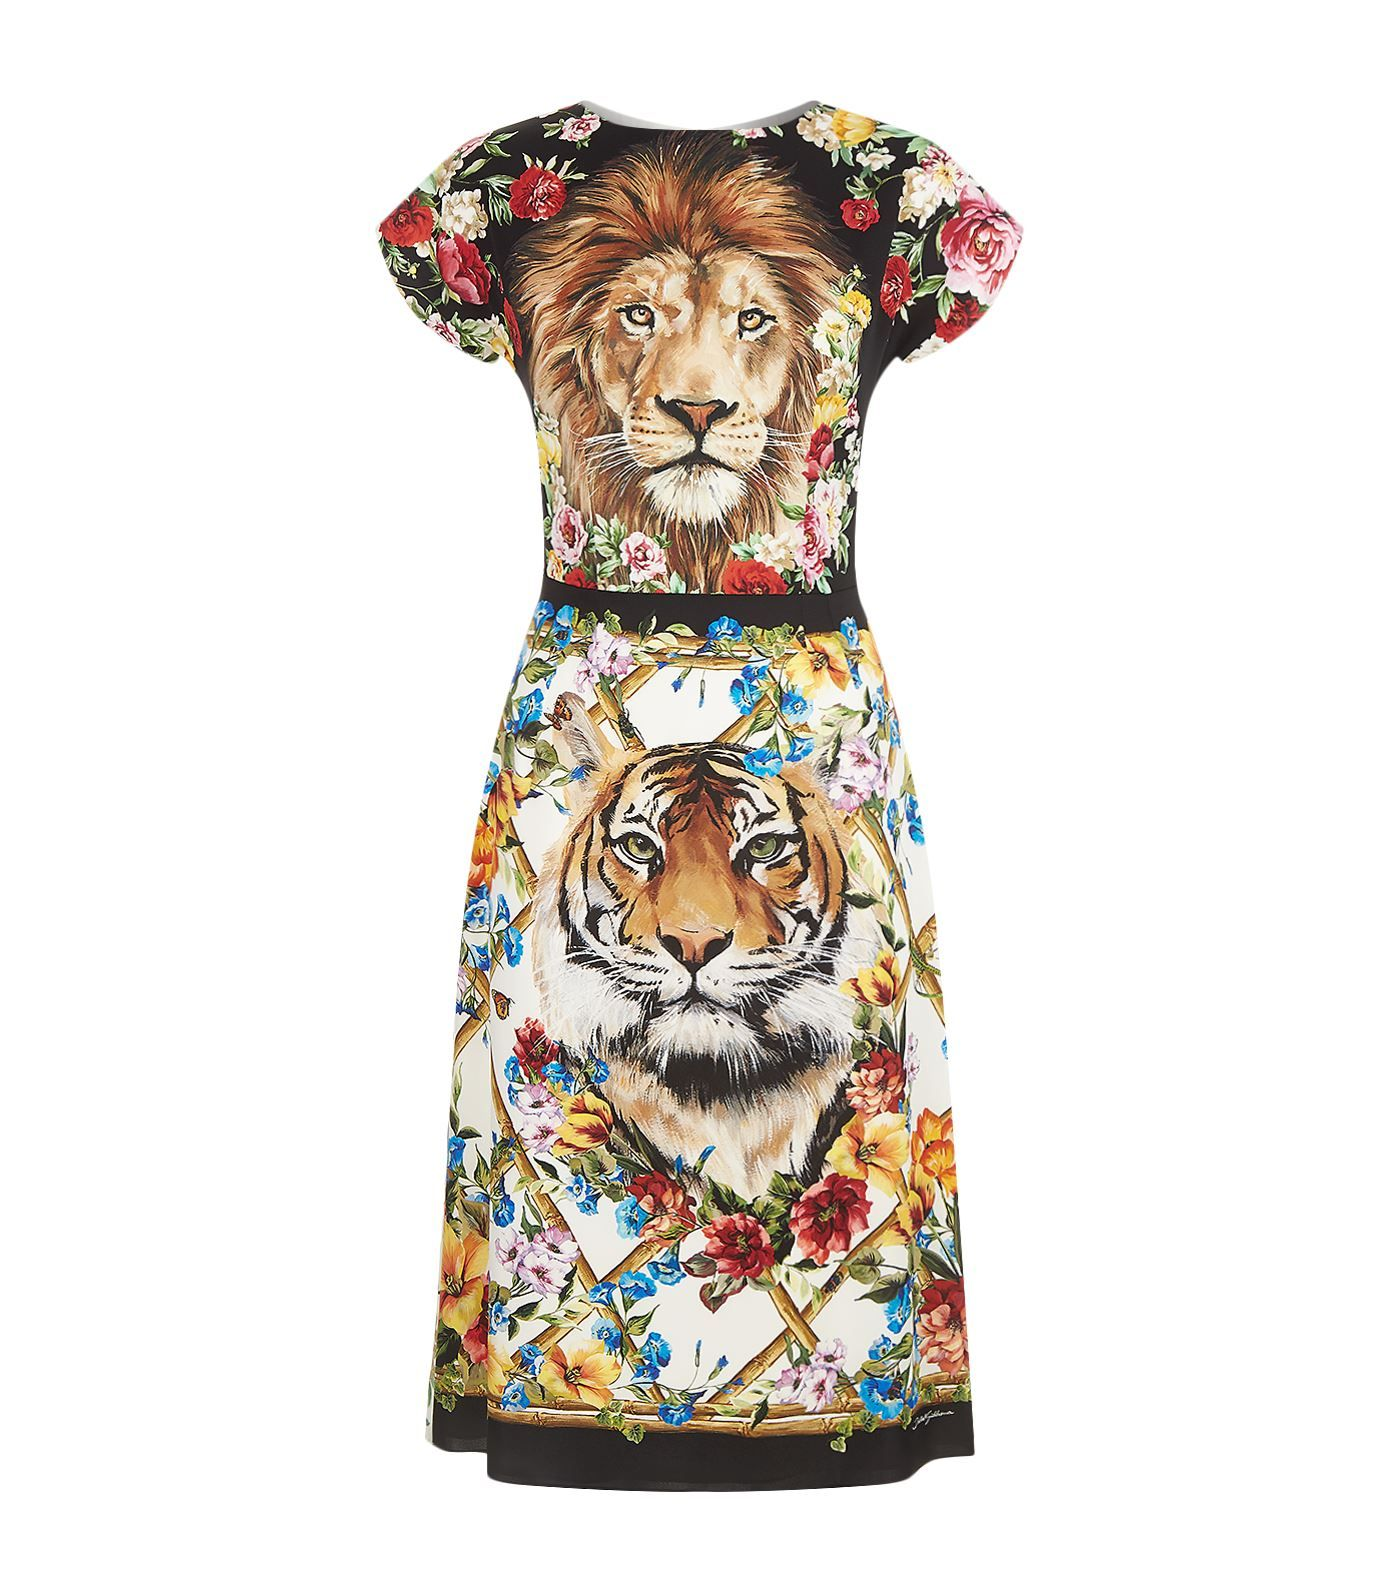 81f860c49 Shop the Dolce & Gabbana Floral and Lion Print Pencil Dress at Harrods.  Shop online at harrods.com & earn reward points.